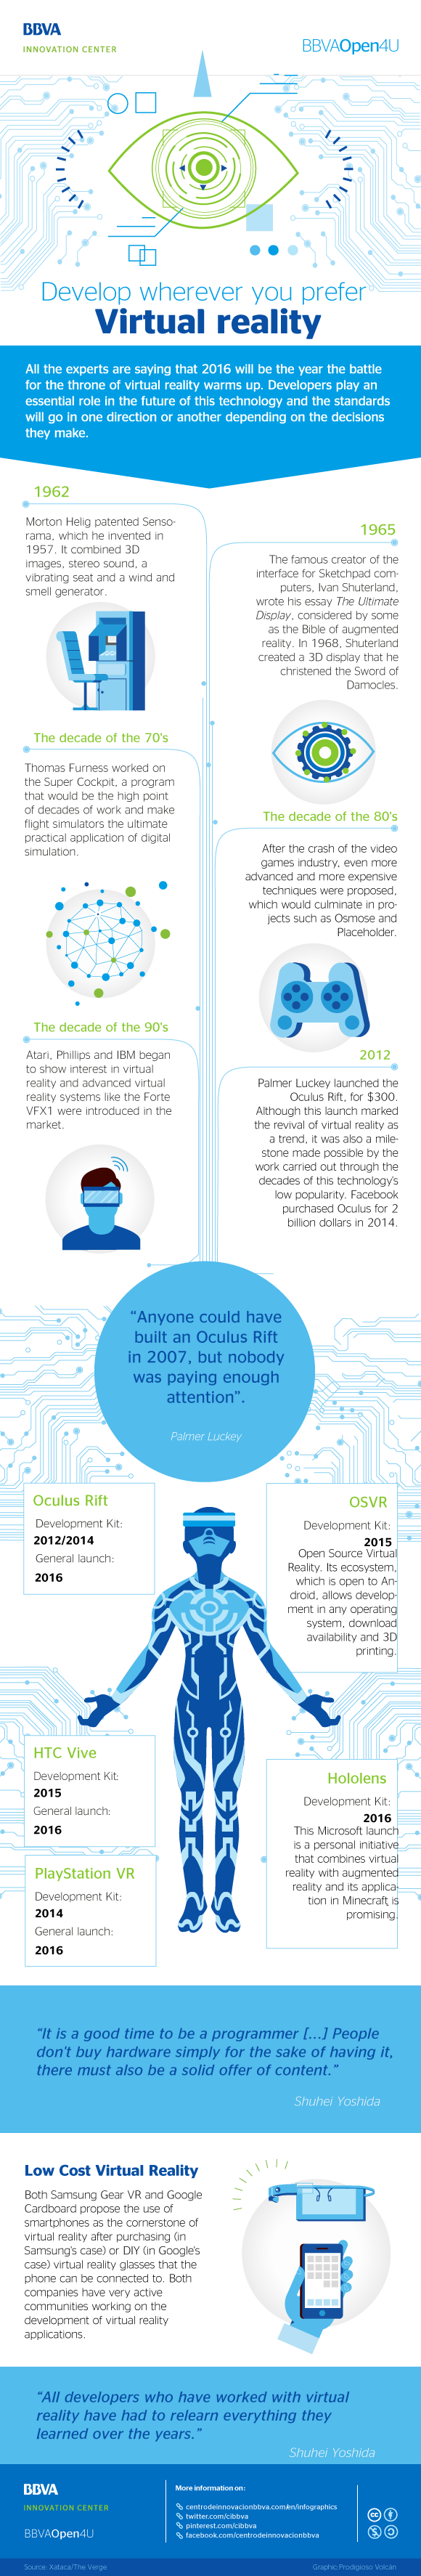 Infographic: Develop wherever you prefer: virtual reality